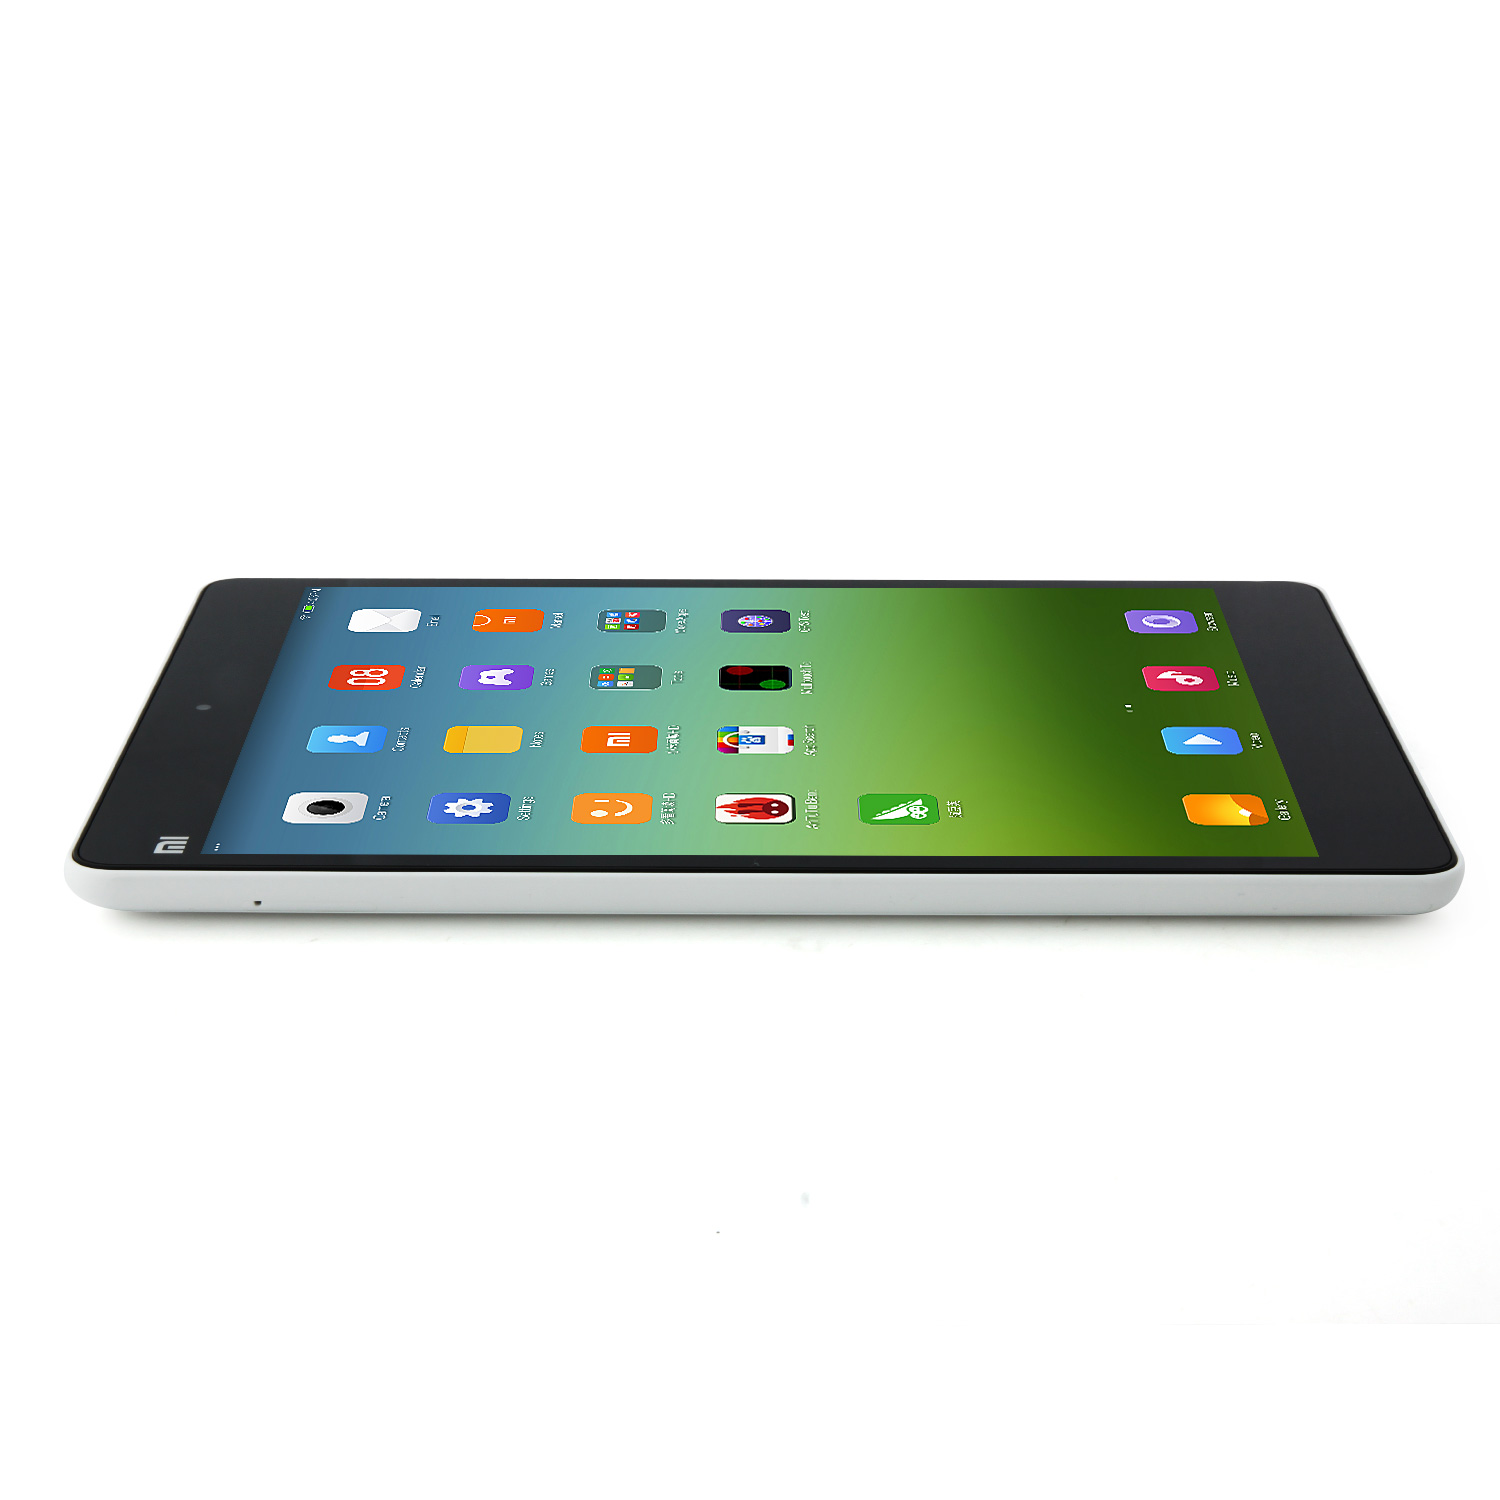 XIAOMI MI PAD Tablet PC Tegra K1 7.9 Inch Android 4.4 Retina IPS Screen 2GB 64GB White